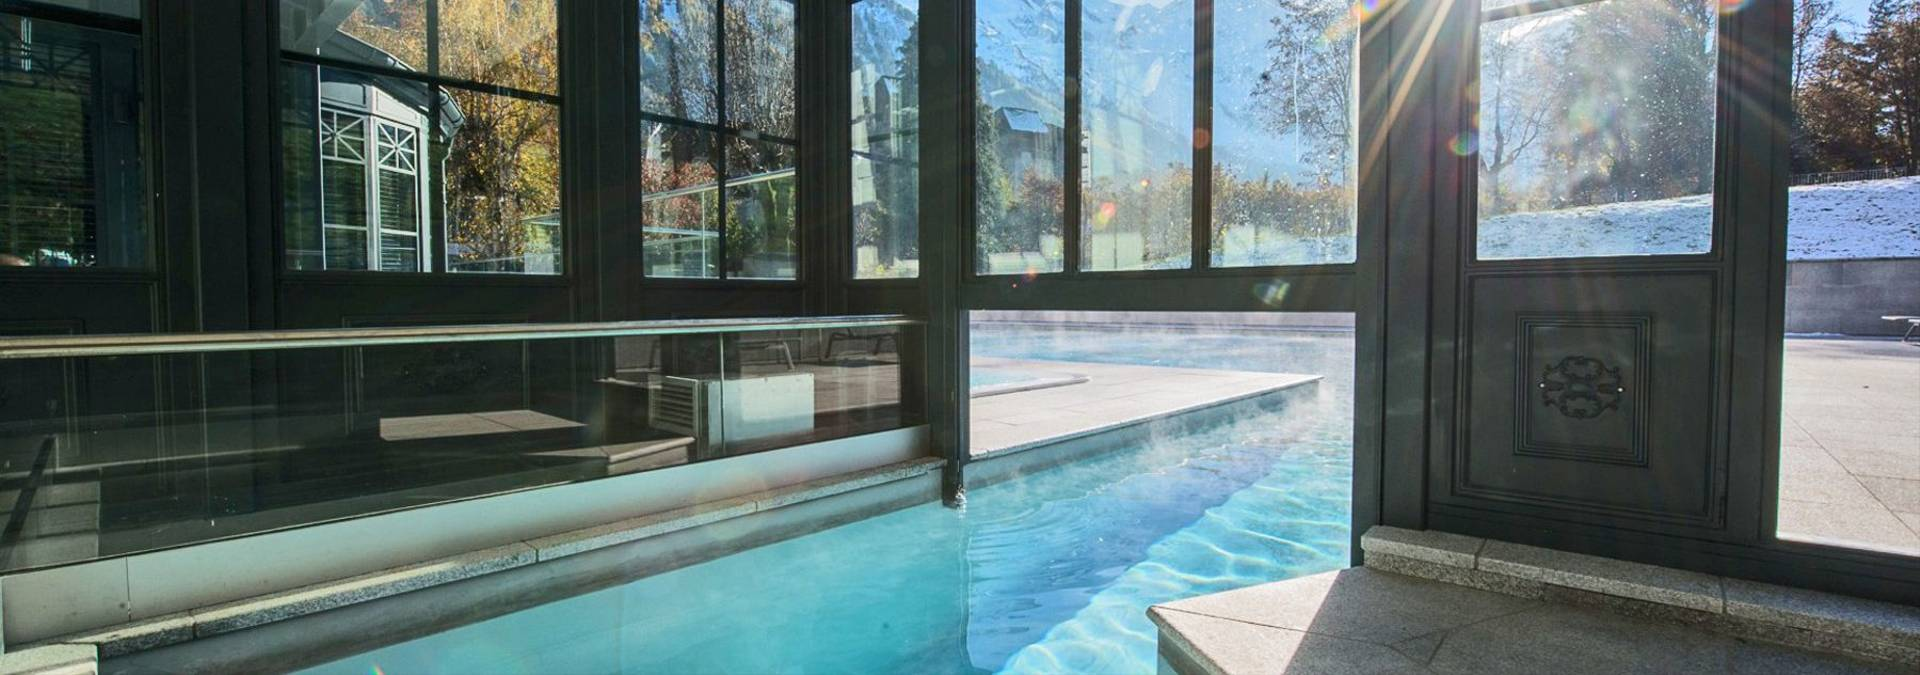 hotel pool for a weekend in chamonix